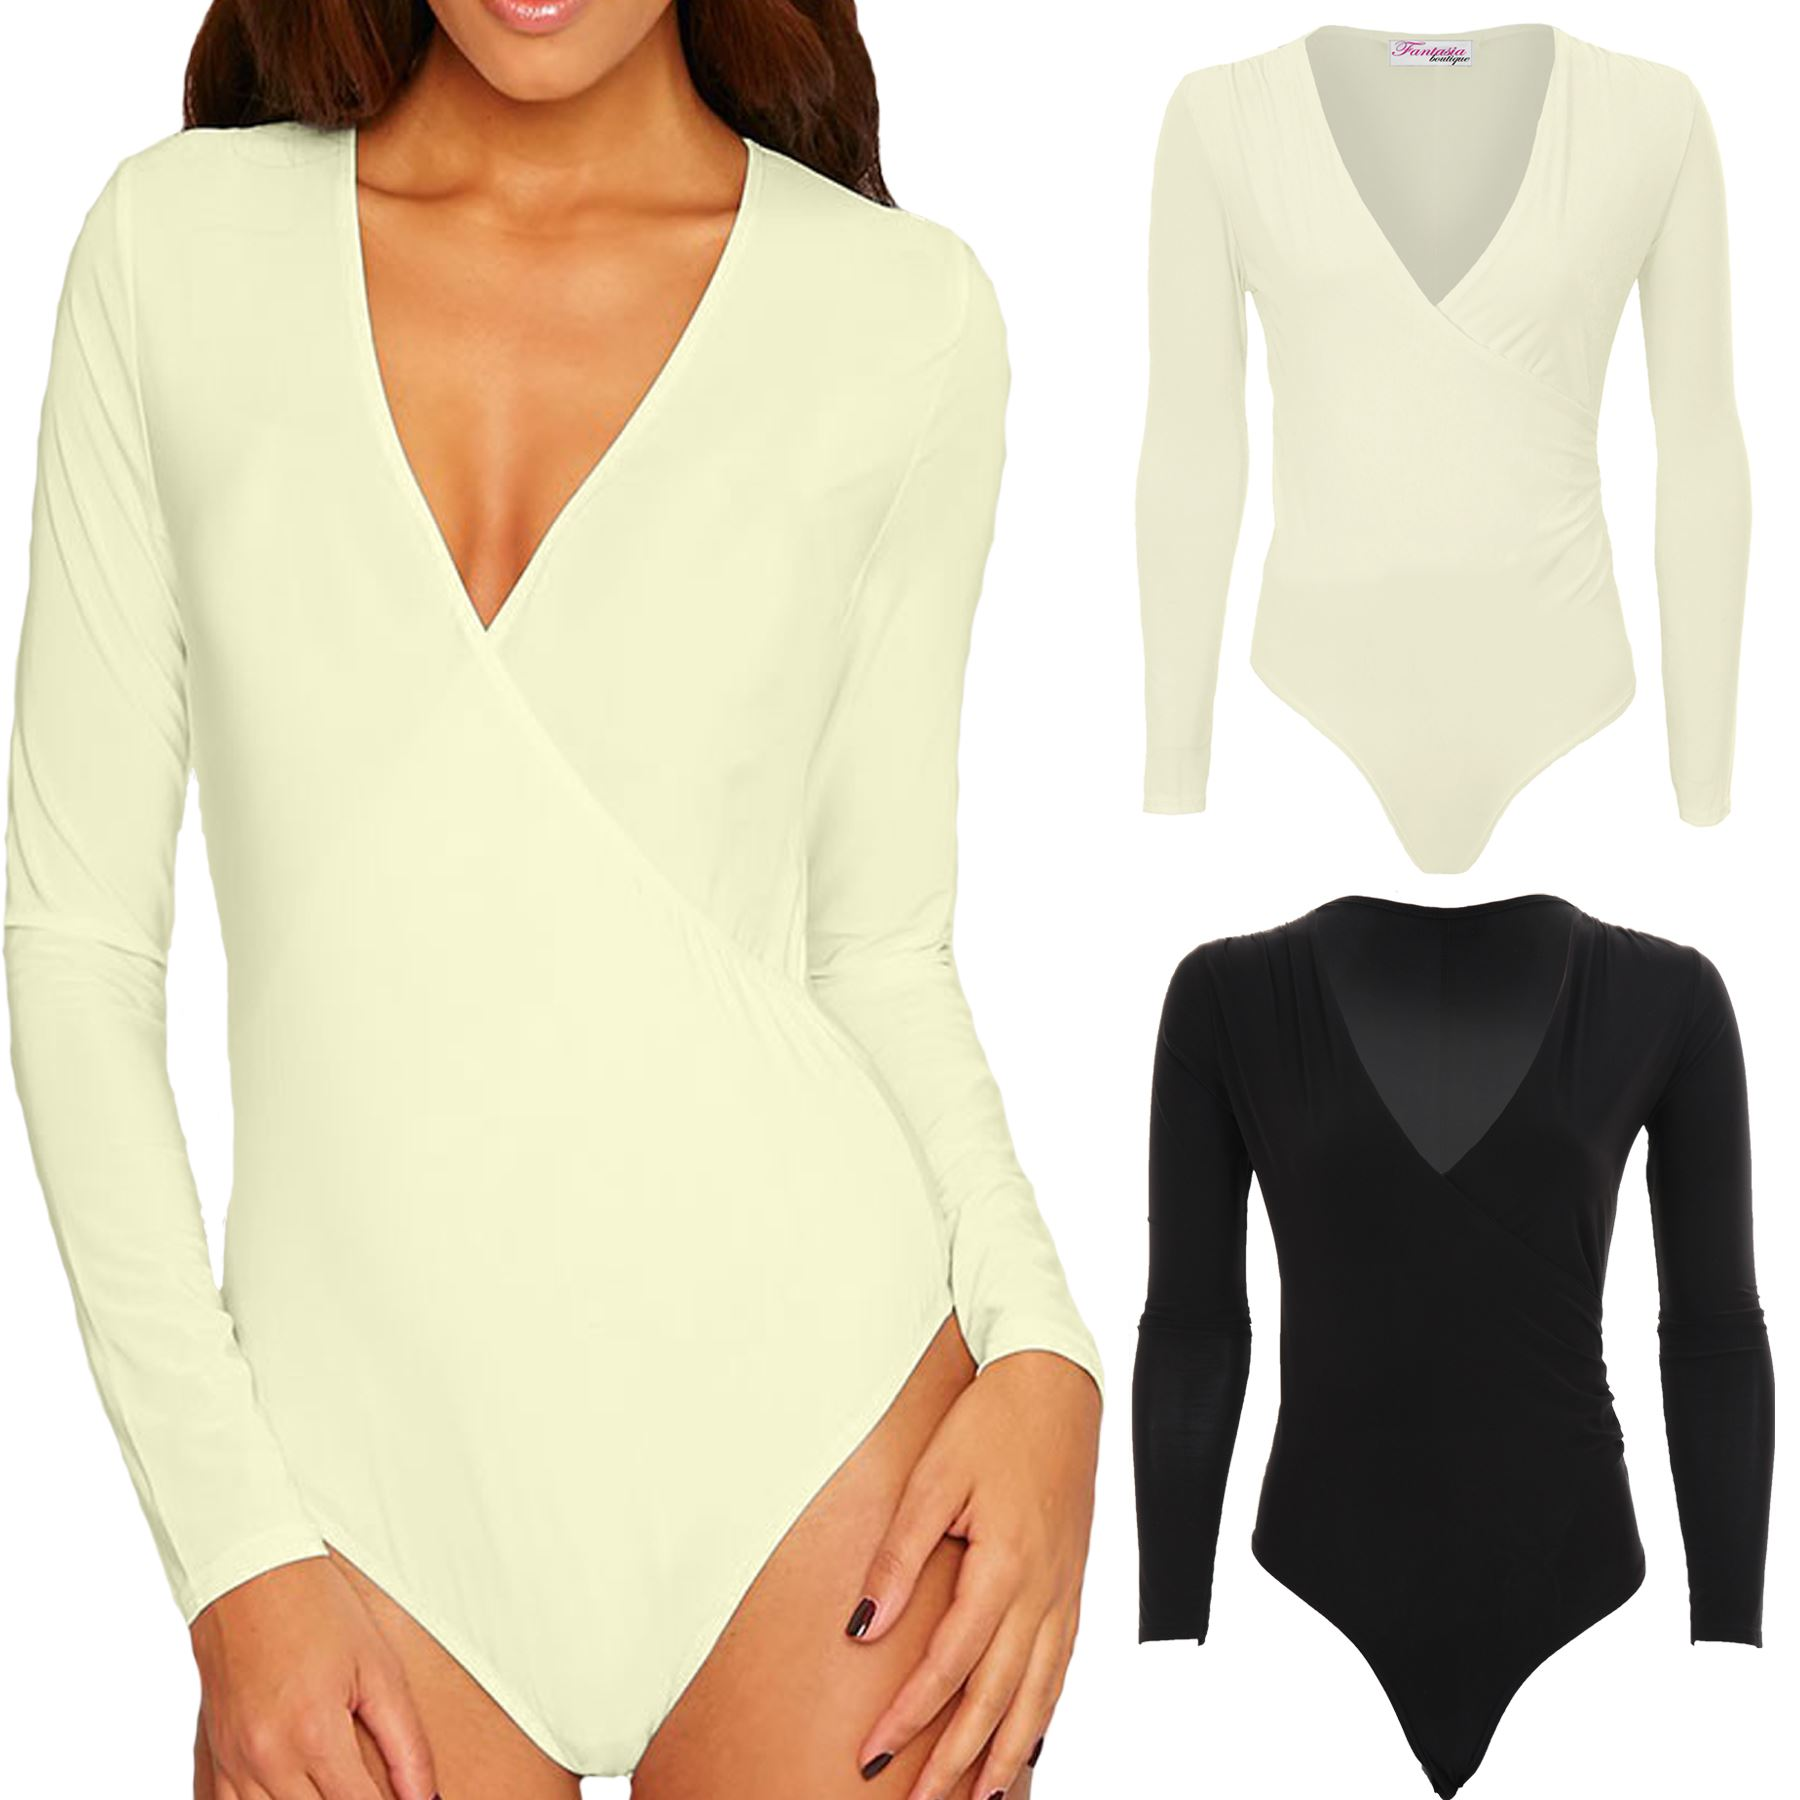 986d31bcdc Details about Womens V Neck Plunge Long Sleeve Basic Soft Slinky Wrap Bodysuit  Leotard